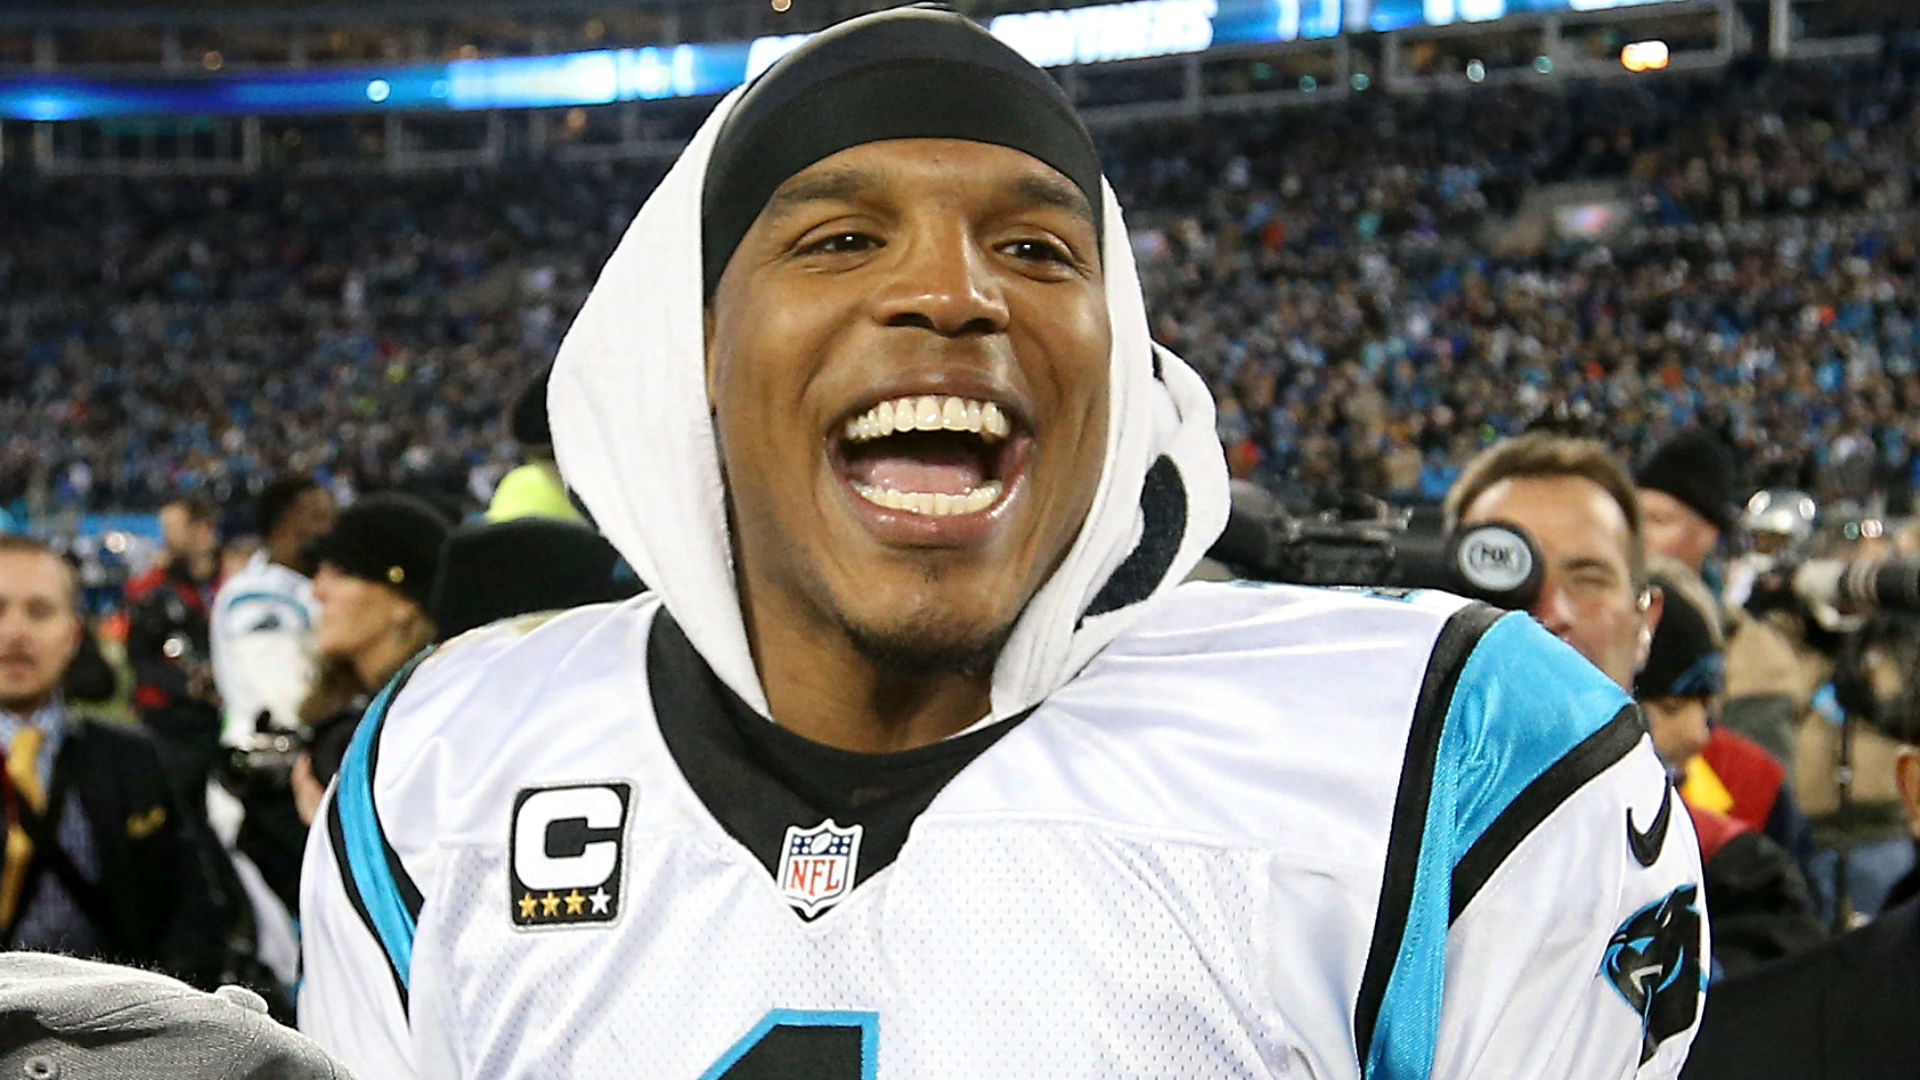 Nice wallpapers Cam Newton 1920x1080px